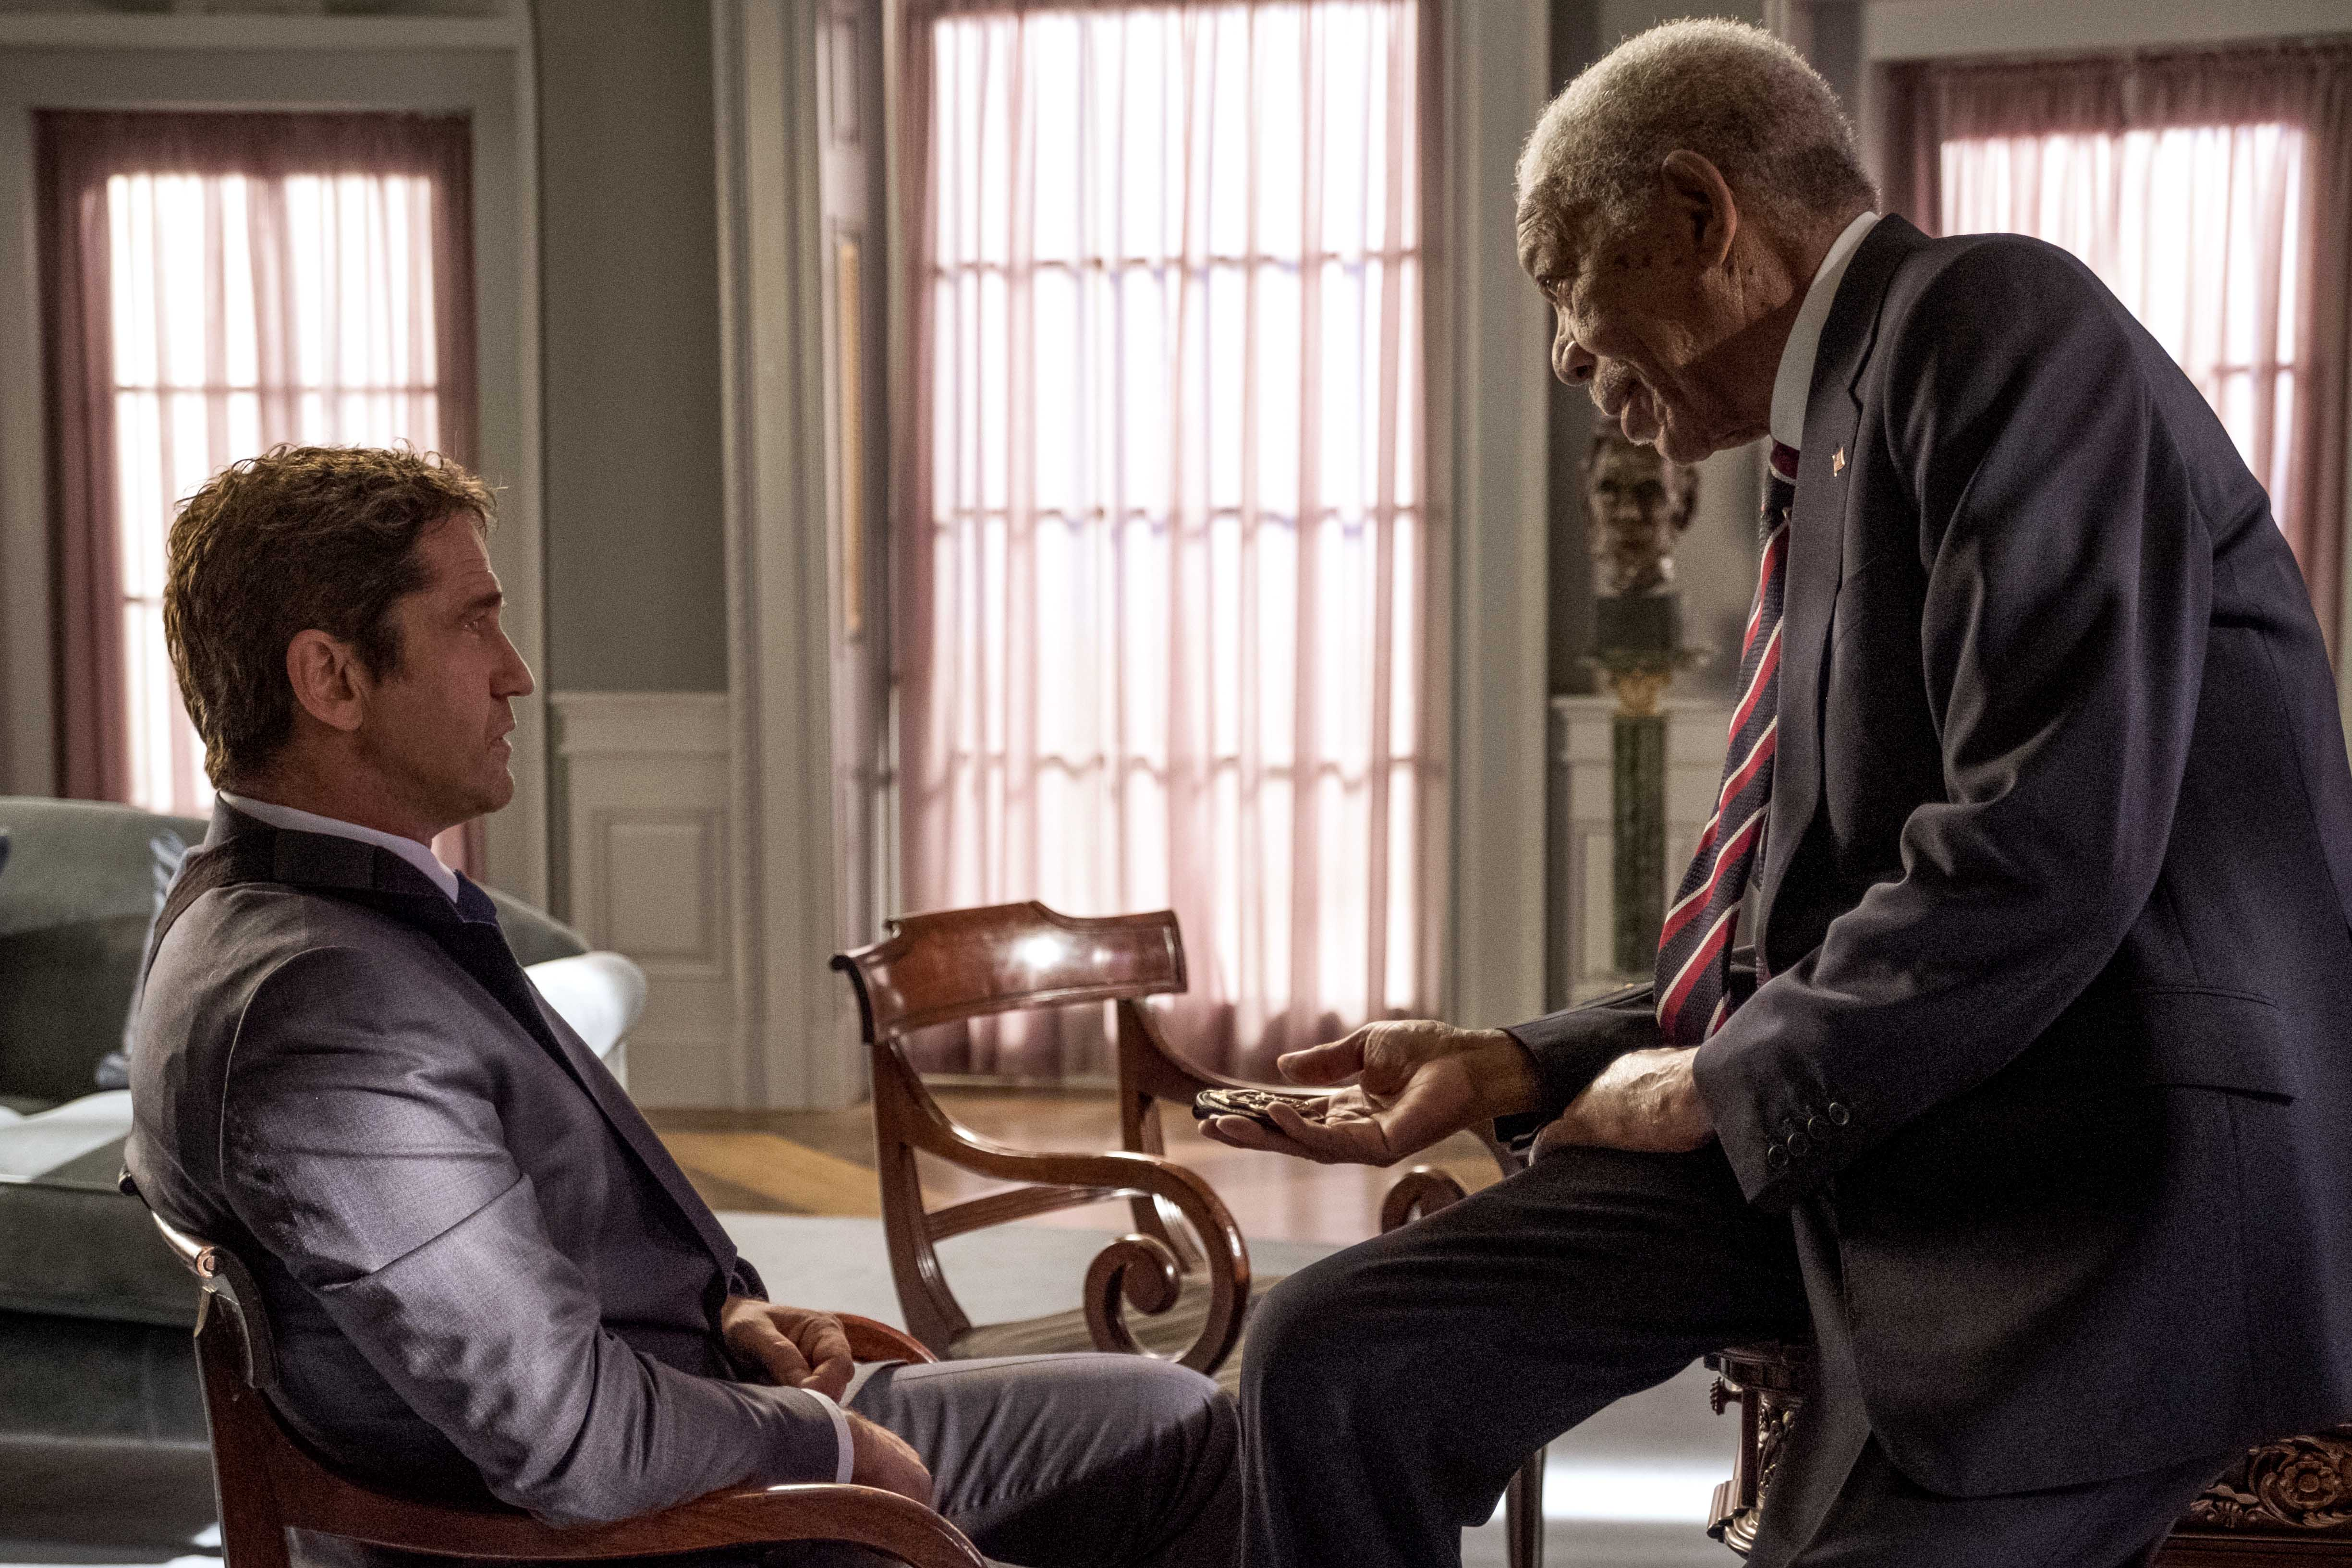 Gerard Butler and Morgan Freeman star in a scene from the movie